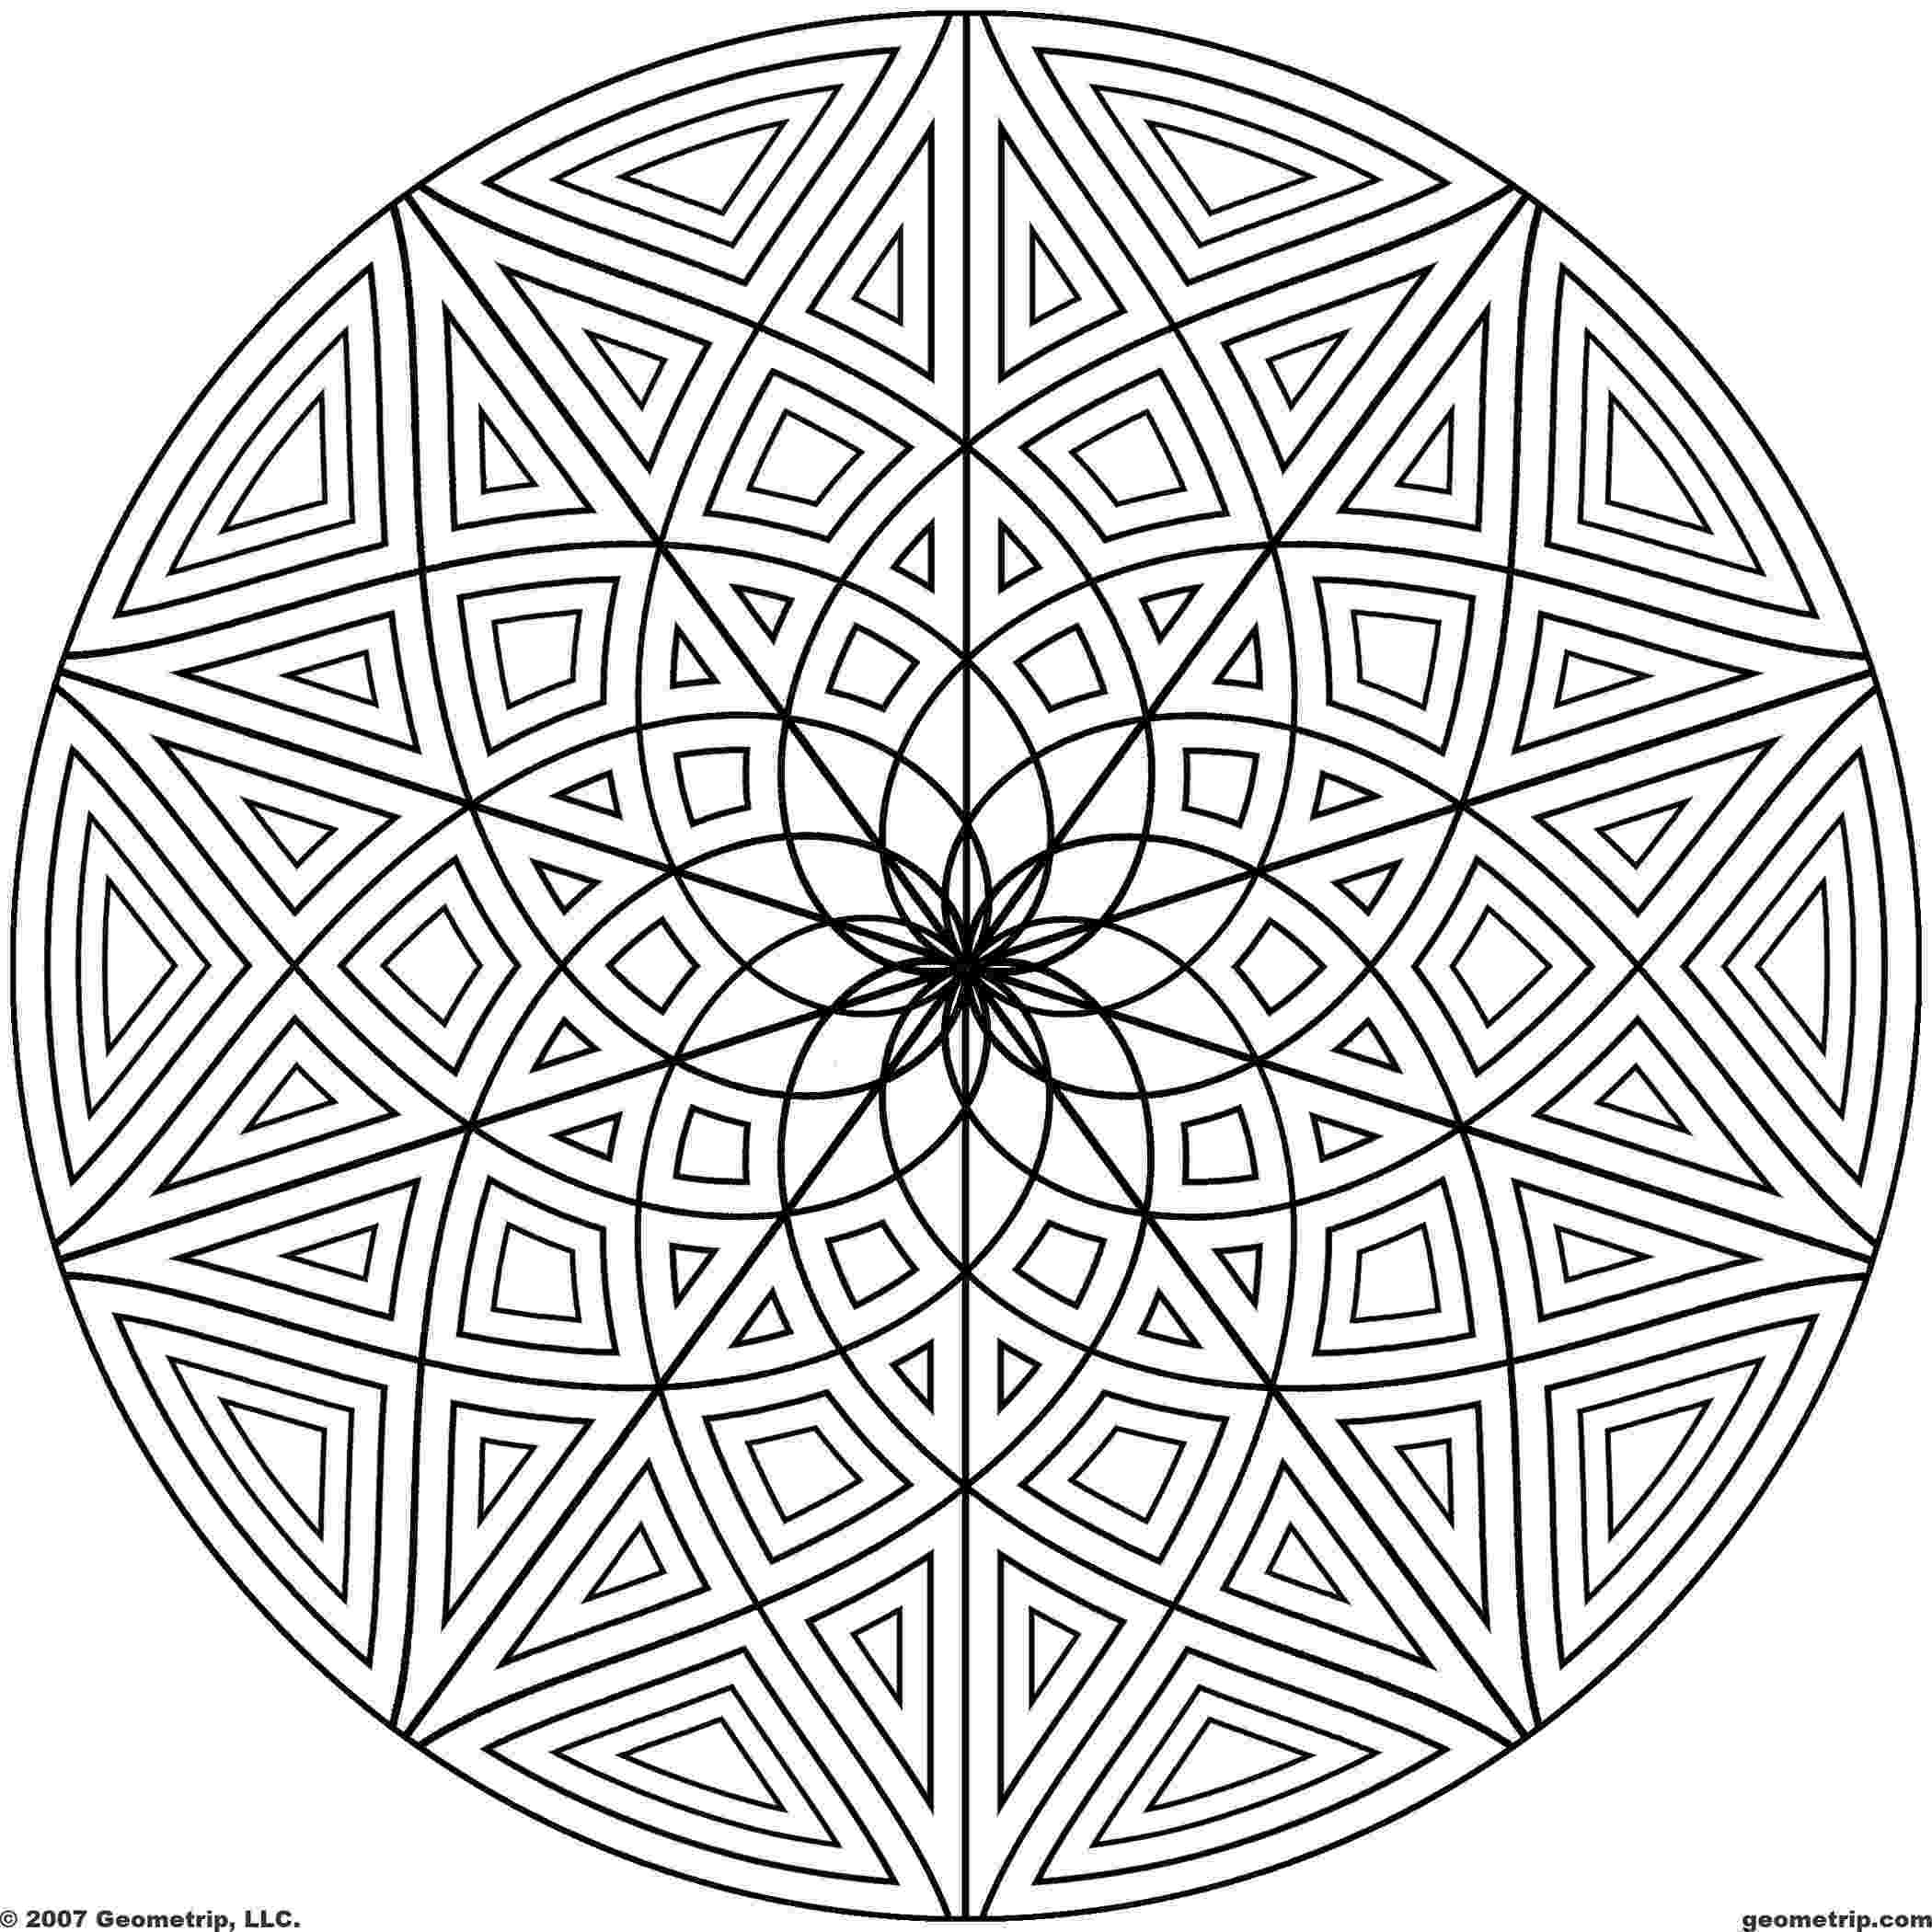 colouring pages of patterns calming patterns for adults who color live your life in patterns colouring of pages